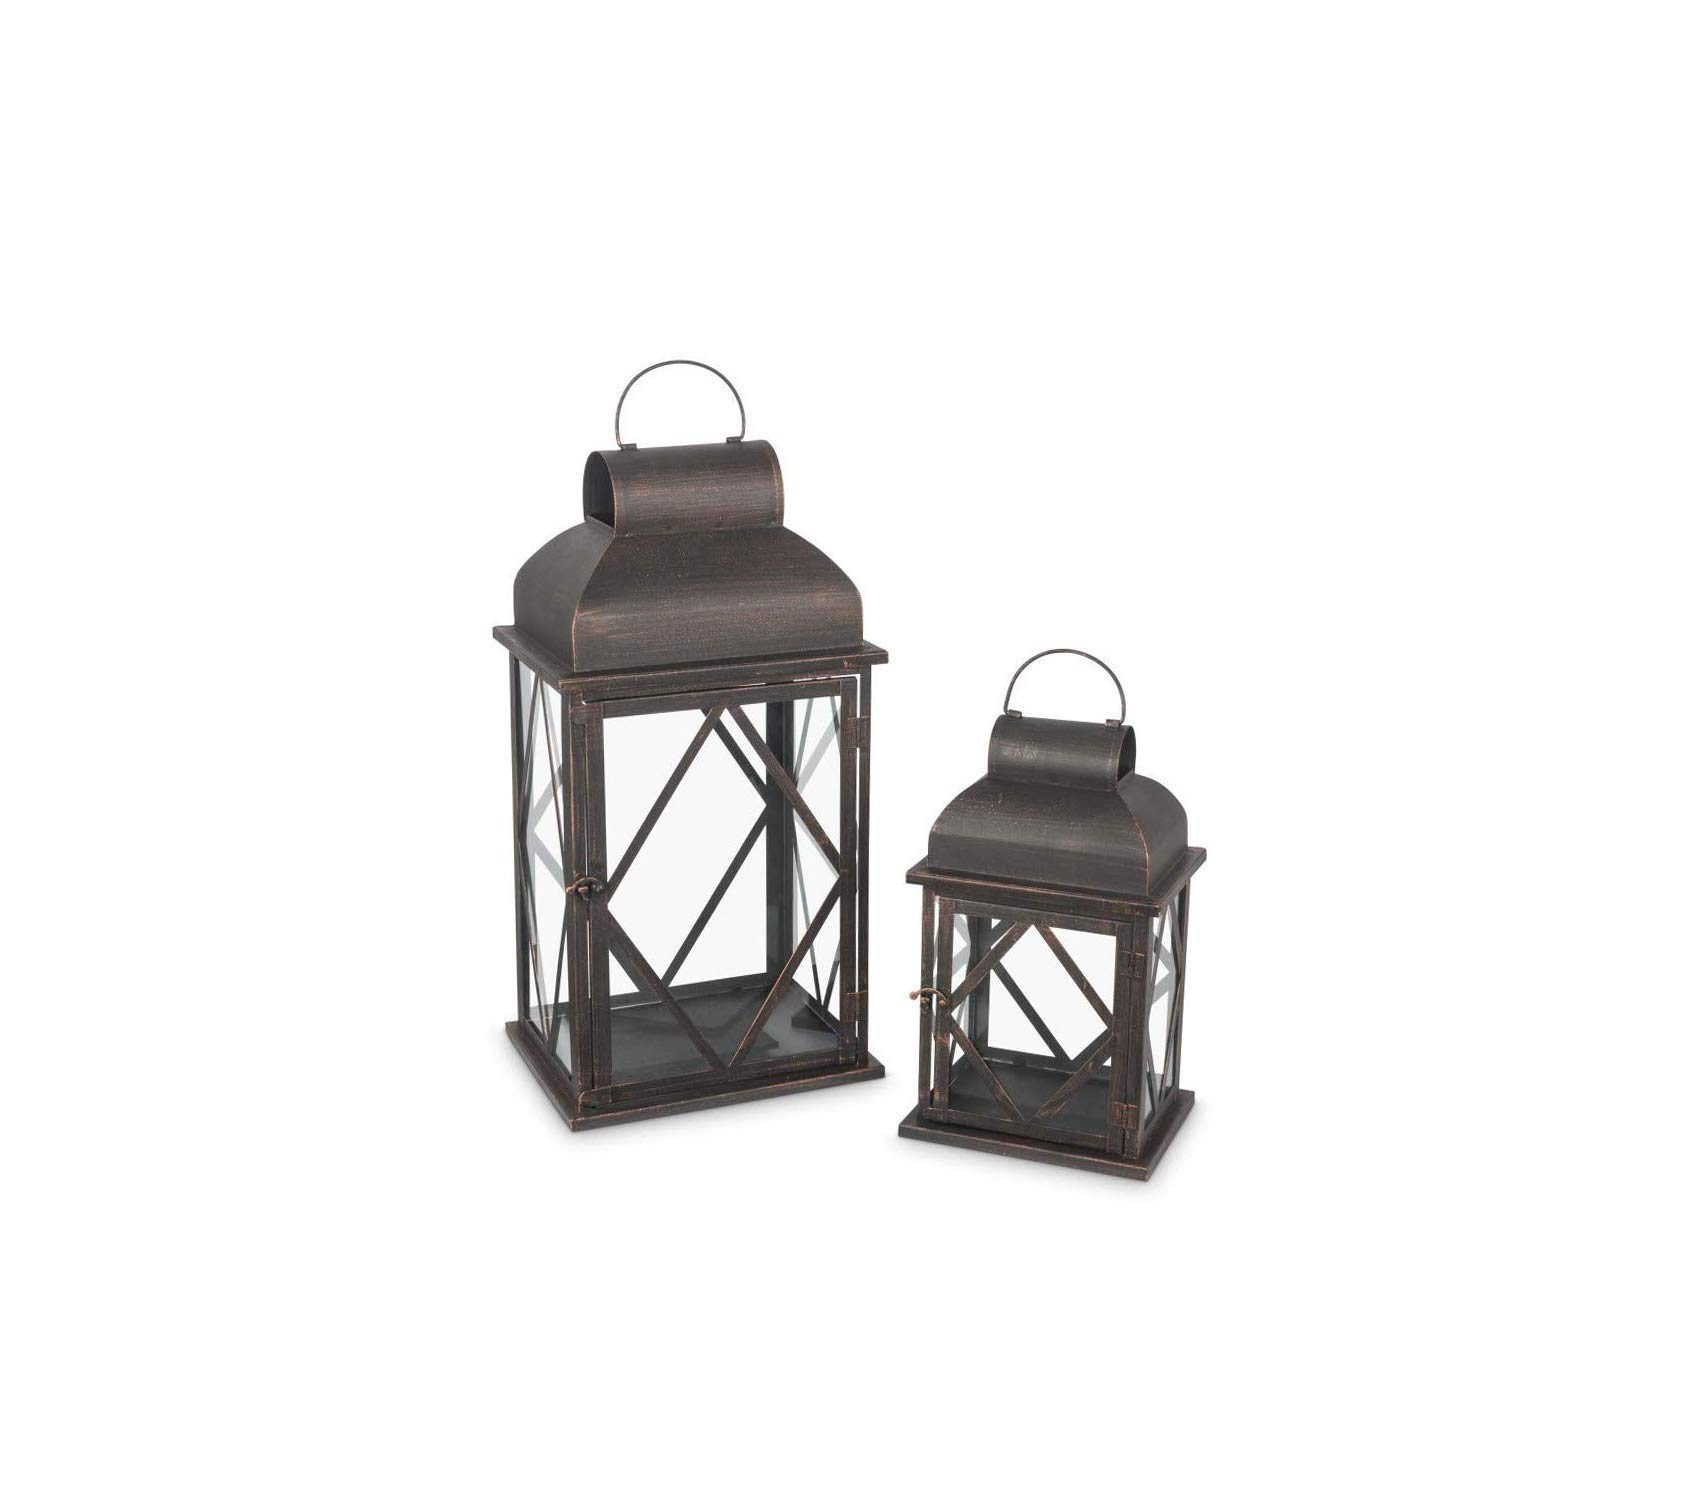 Bronze Metal Lantern Christmas 12.5InL x 8.5InW x 21InH Brown Decor Comfy Living Furniture Deluxe Premium Collection